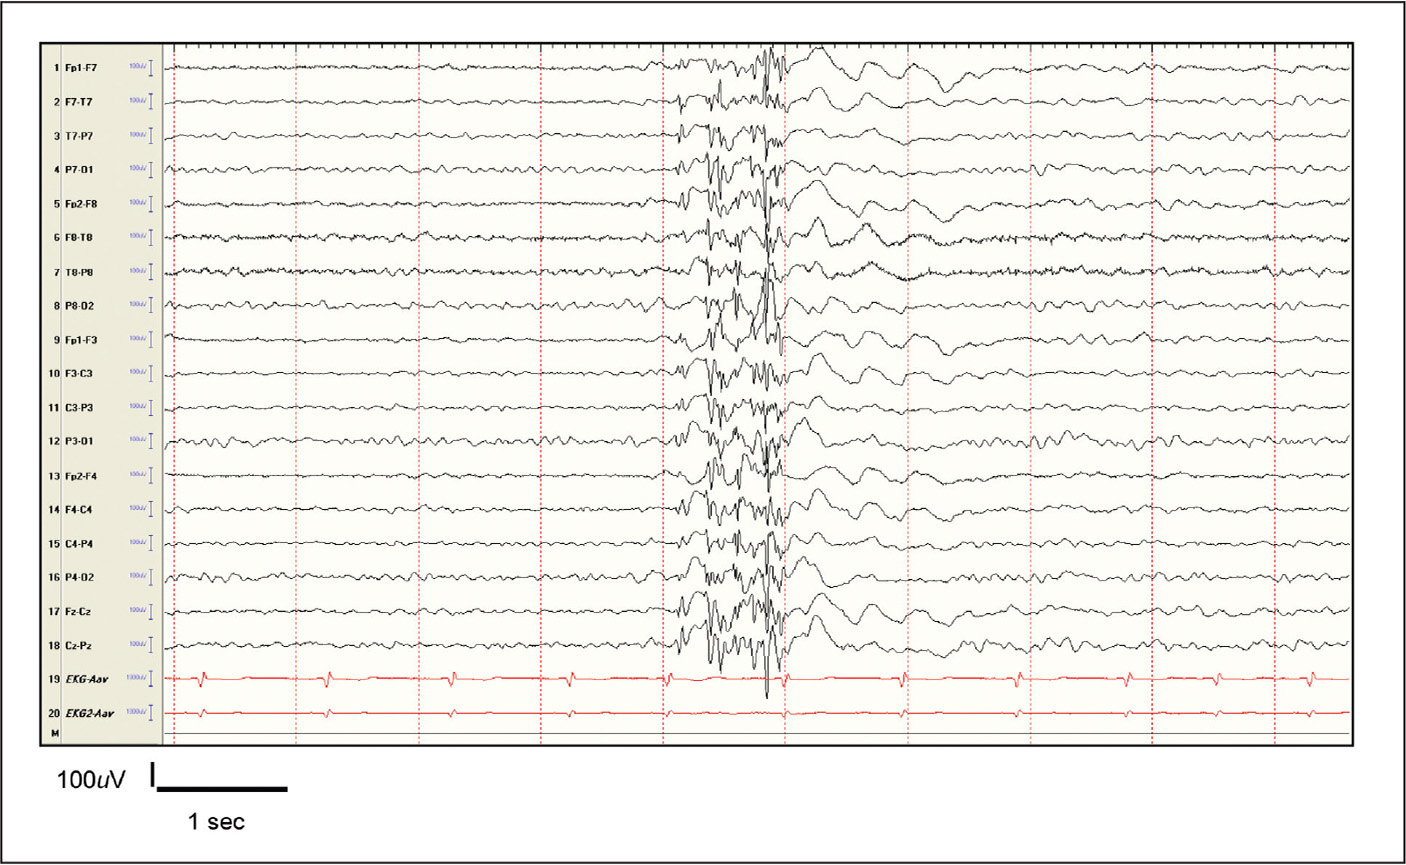 Interictal discharges in juvenile myoclonic epilepsy showing an 18-year-old female with diffuse polyspikes lasting approximately 1 second with no clinical signs.